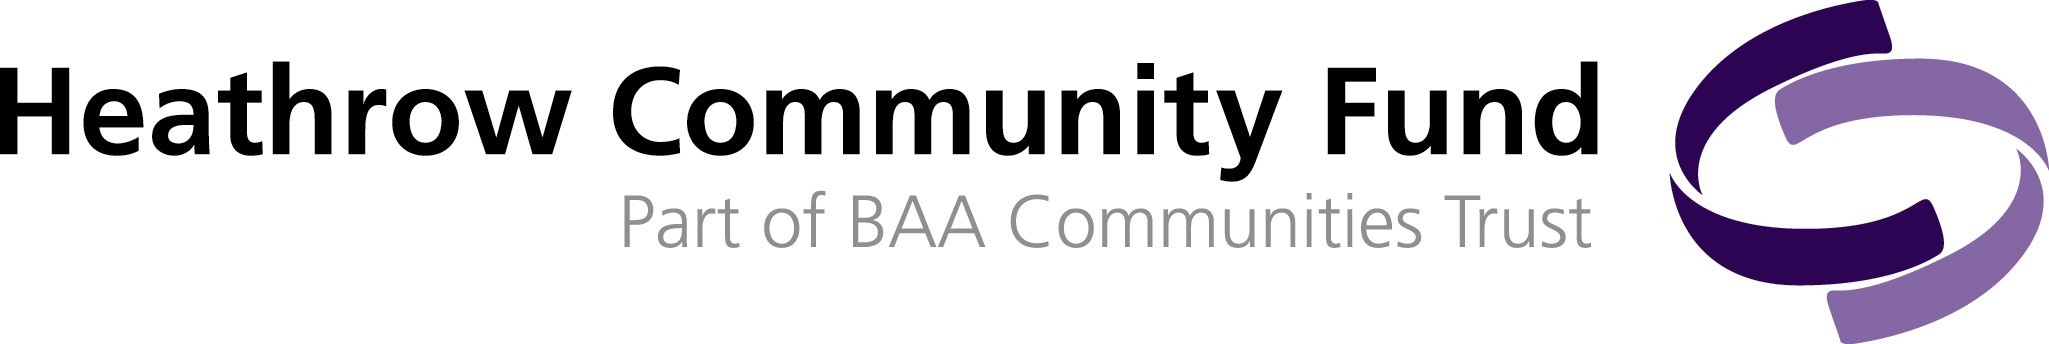 Community-Fund-Logo.jpg